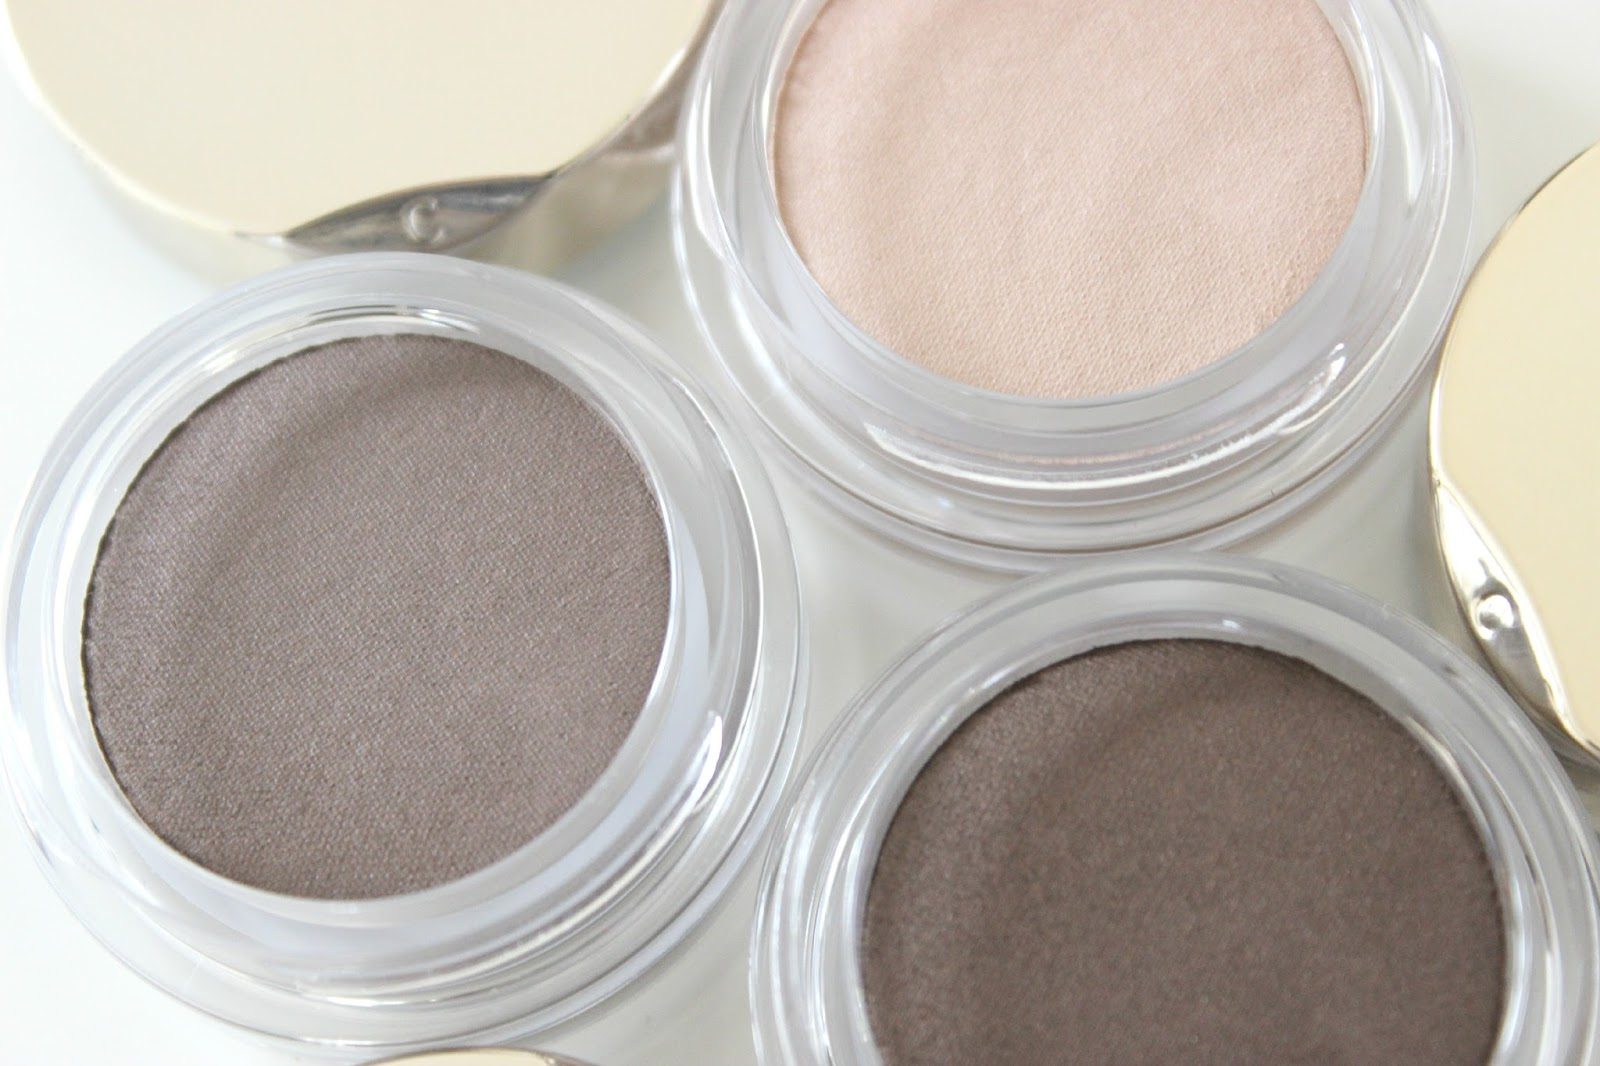 A picture of Clarins Ombre Matte Cream-to-Powder Eyeshadow in Nude Pink, Rosewood and Earth